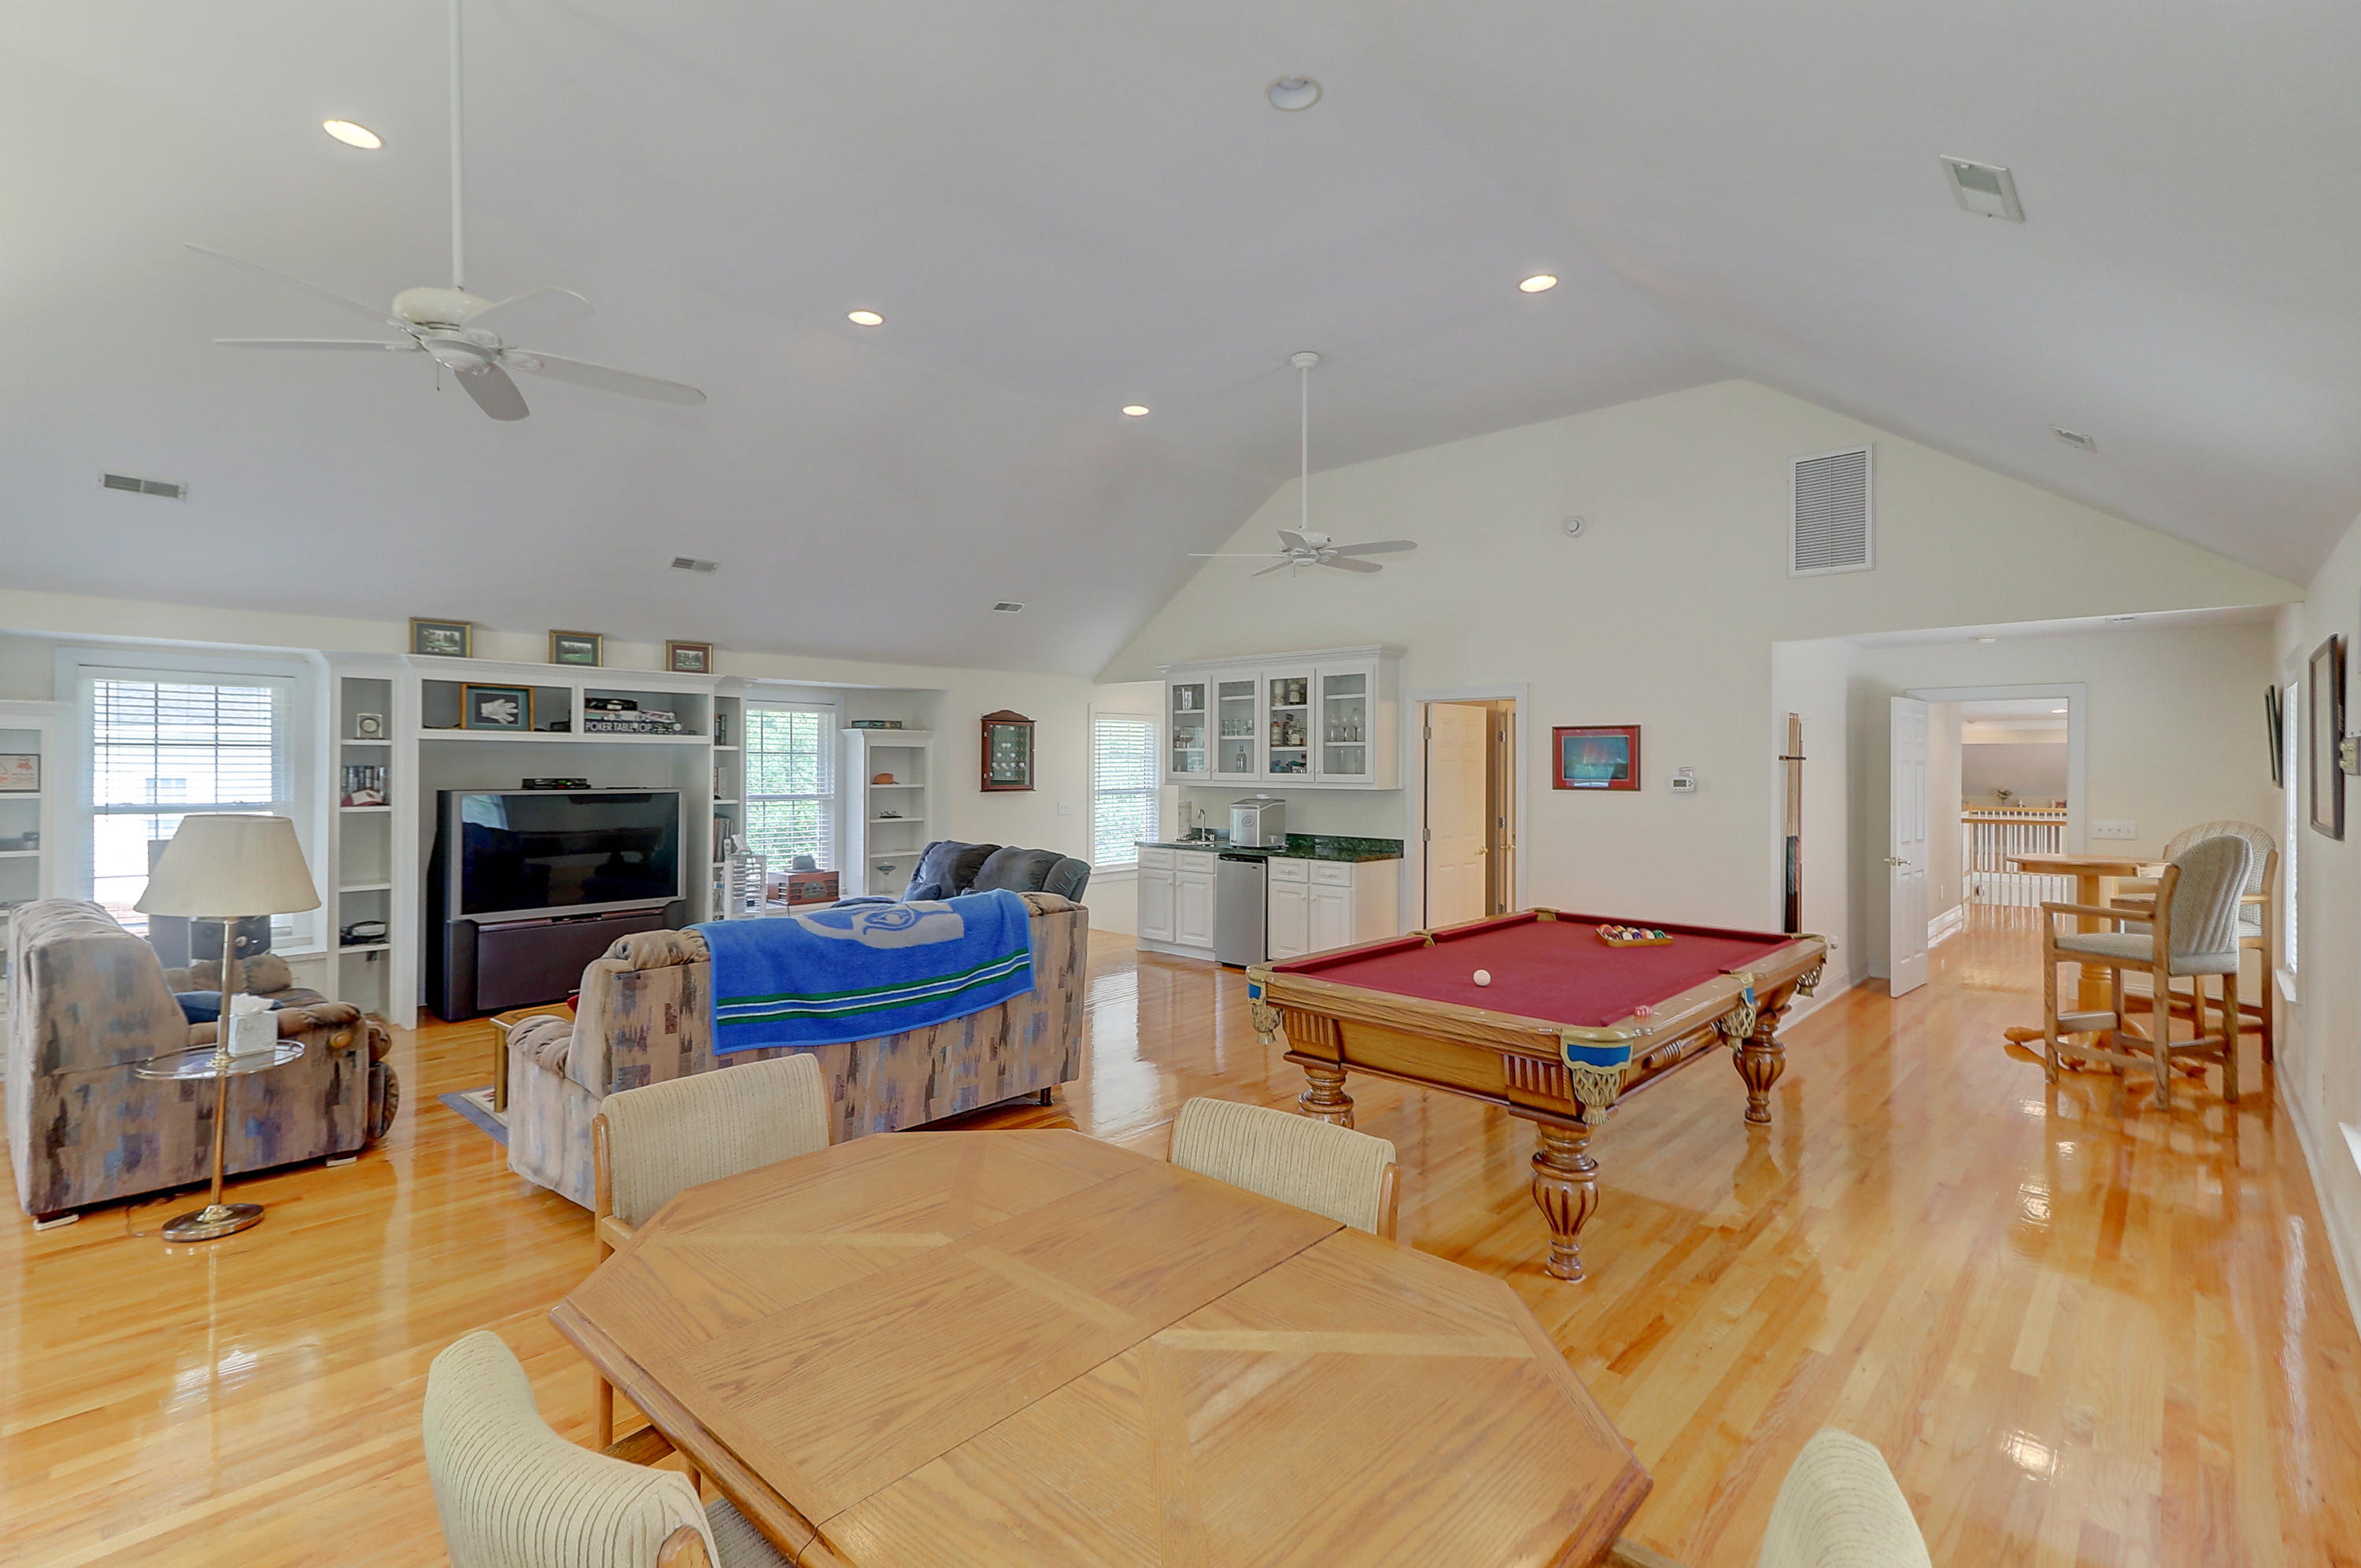 Coosaw Creek Country Club Homes For Sale - 8700 Fairway Woods, North Charleston, SC - 77